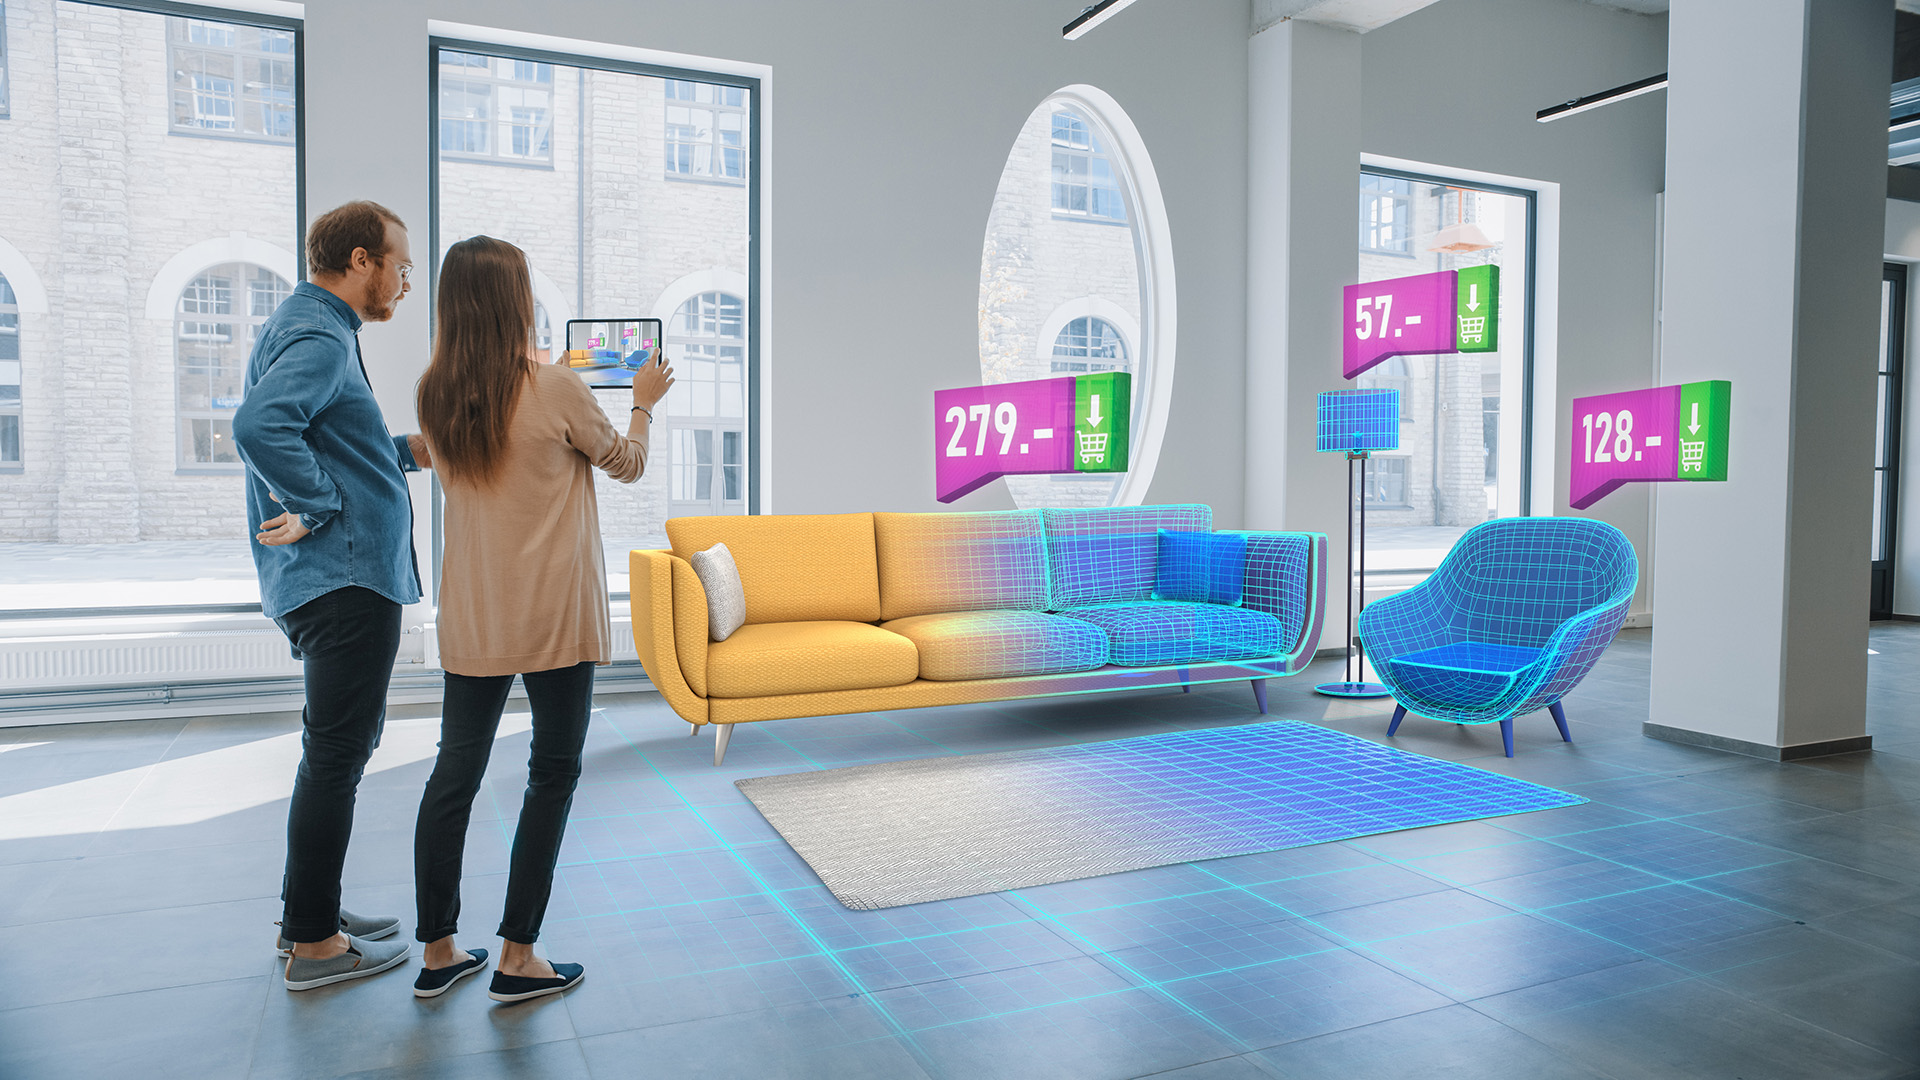 young couple using augmented reality shopping experience for furniture